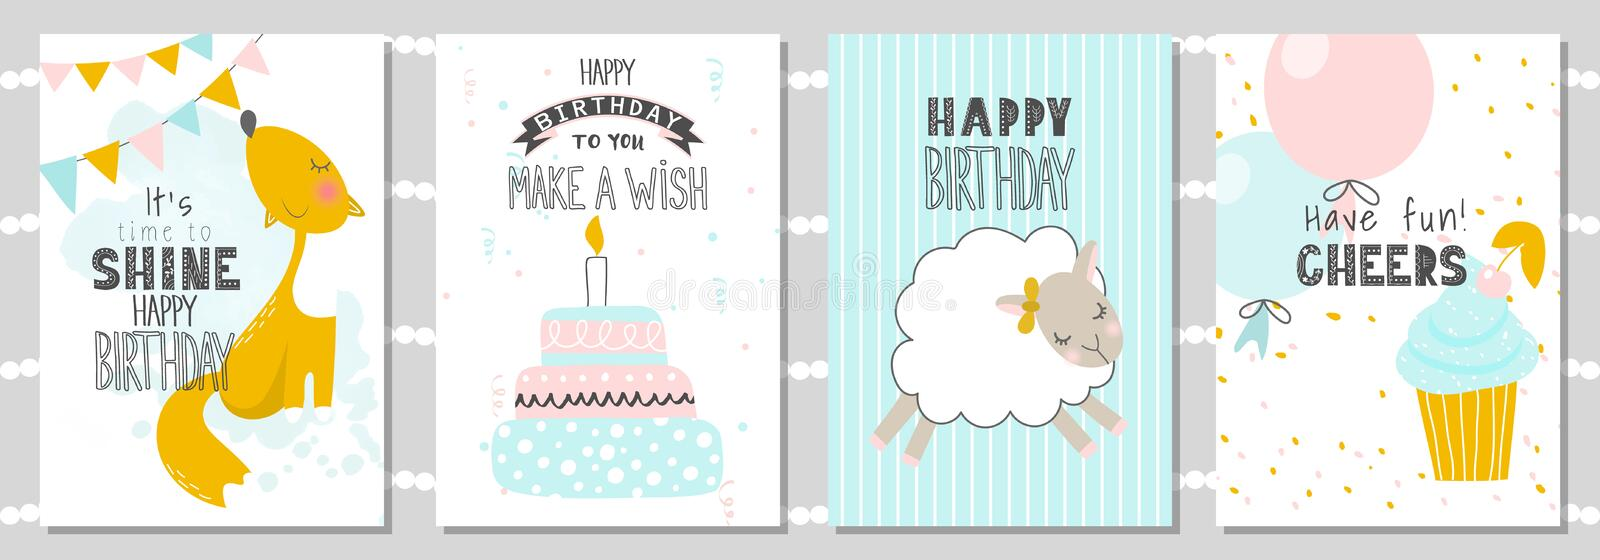 Set of Birthday greeting cards and party invitation templates with cute fox,sheep and cake. Vector illustration.  stock illustration